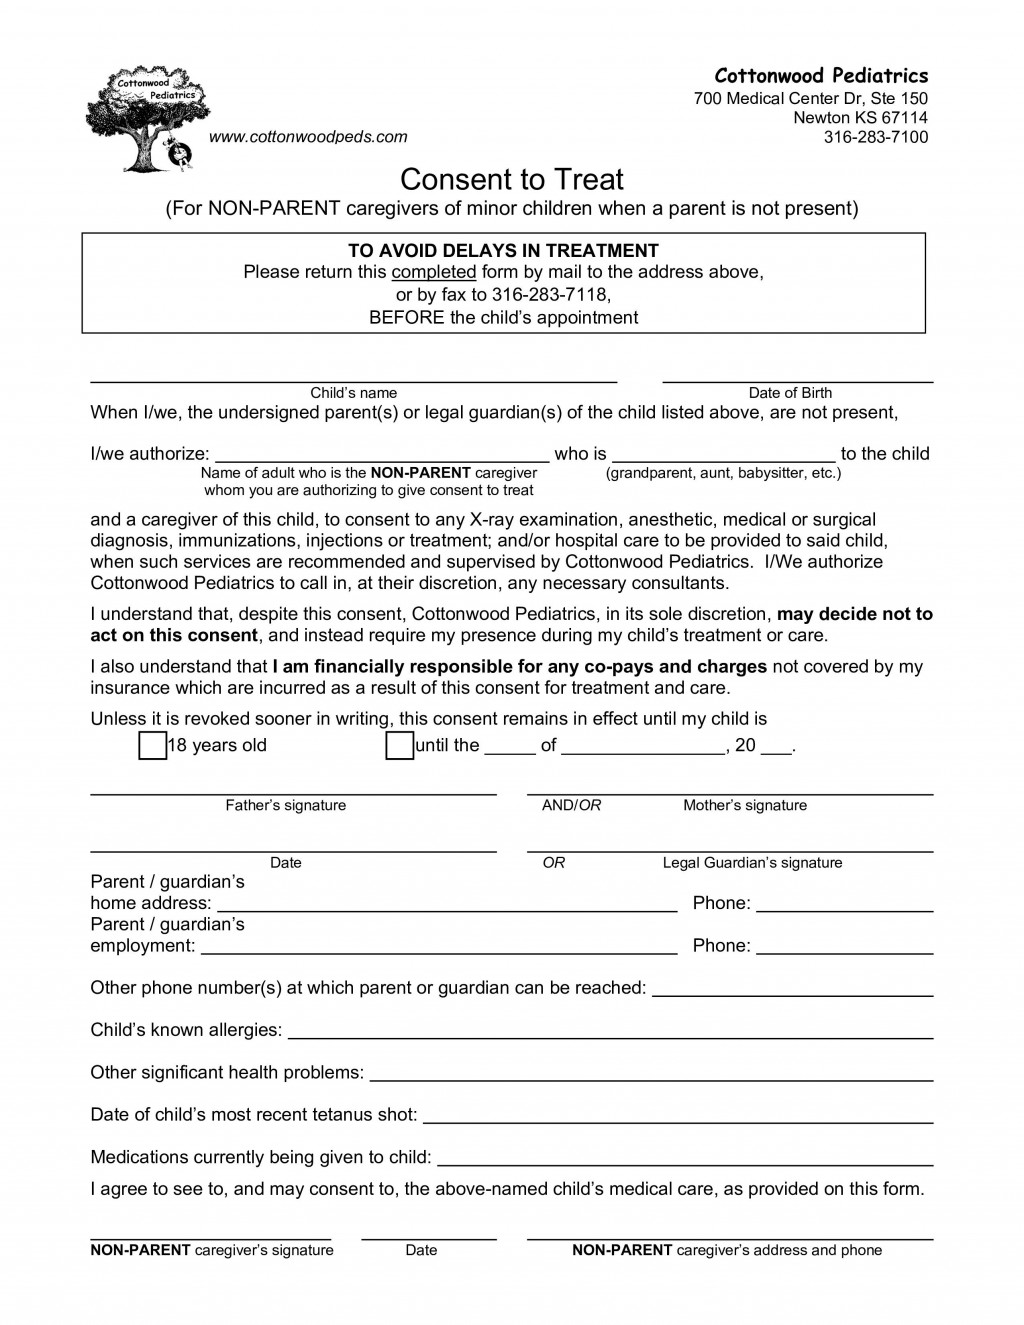 002 Surprising Medical Consent Form Template Idea  Templates FreeLarge